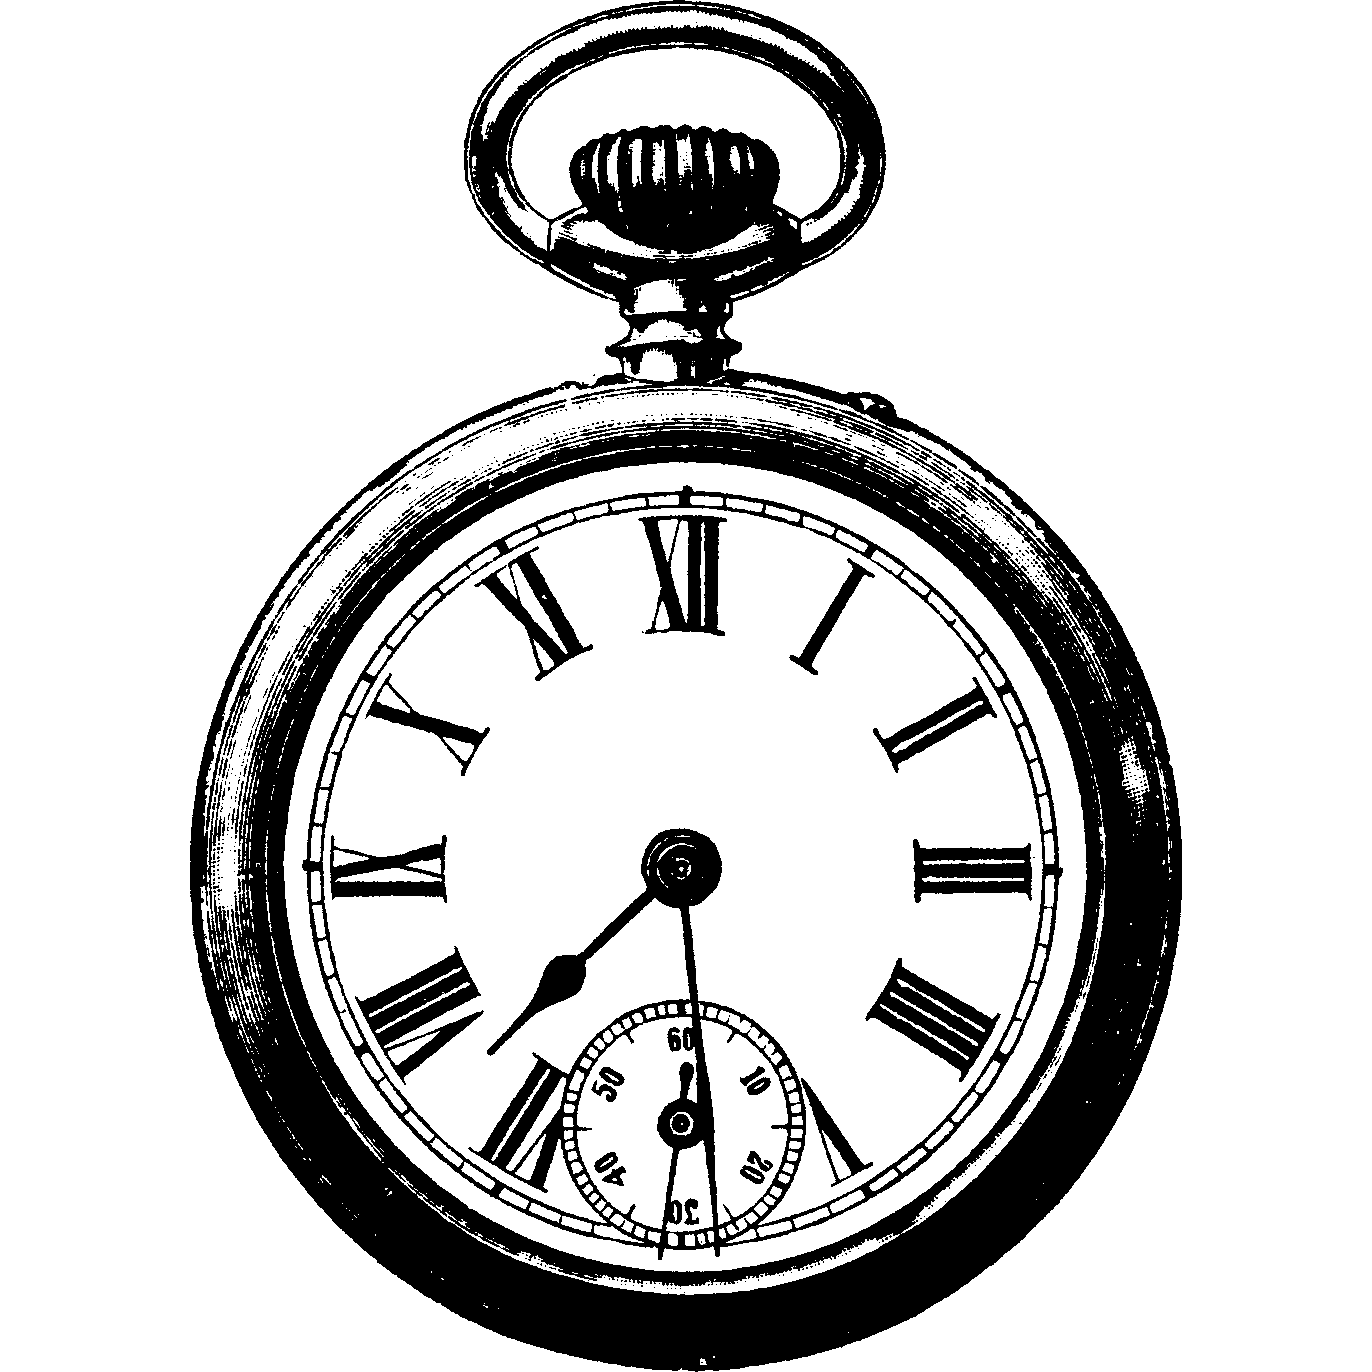 Vintage pocket watch bw. See clipart wacth